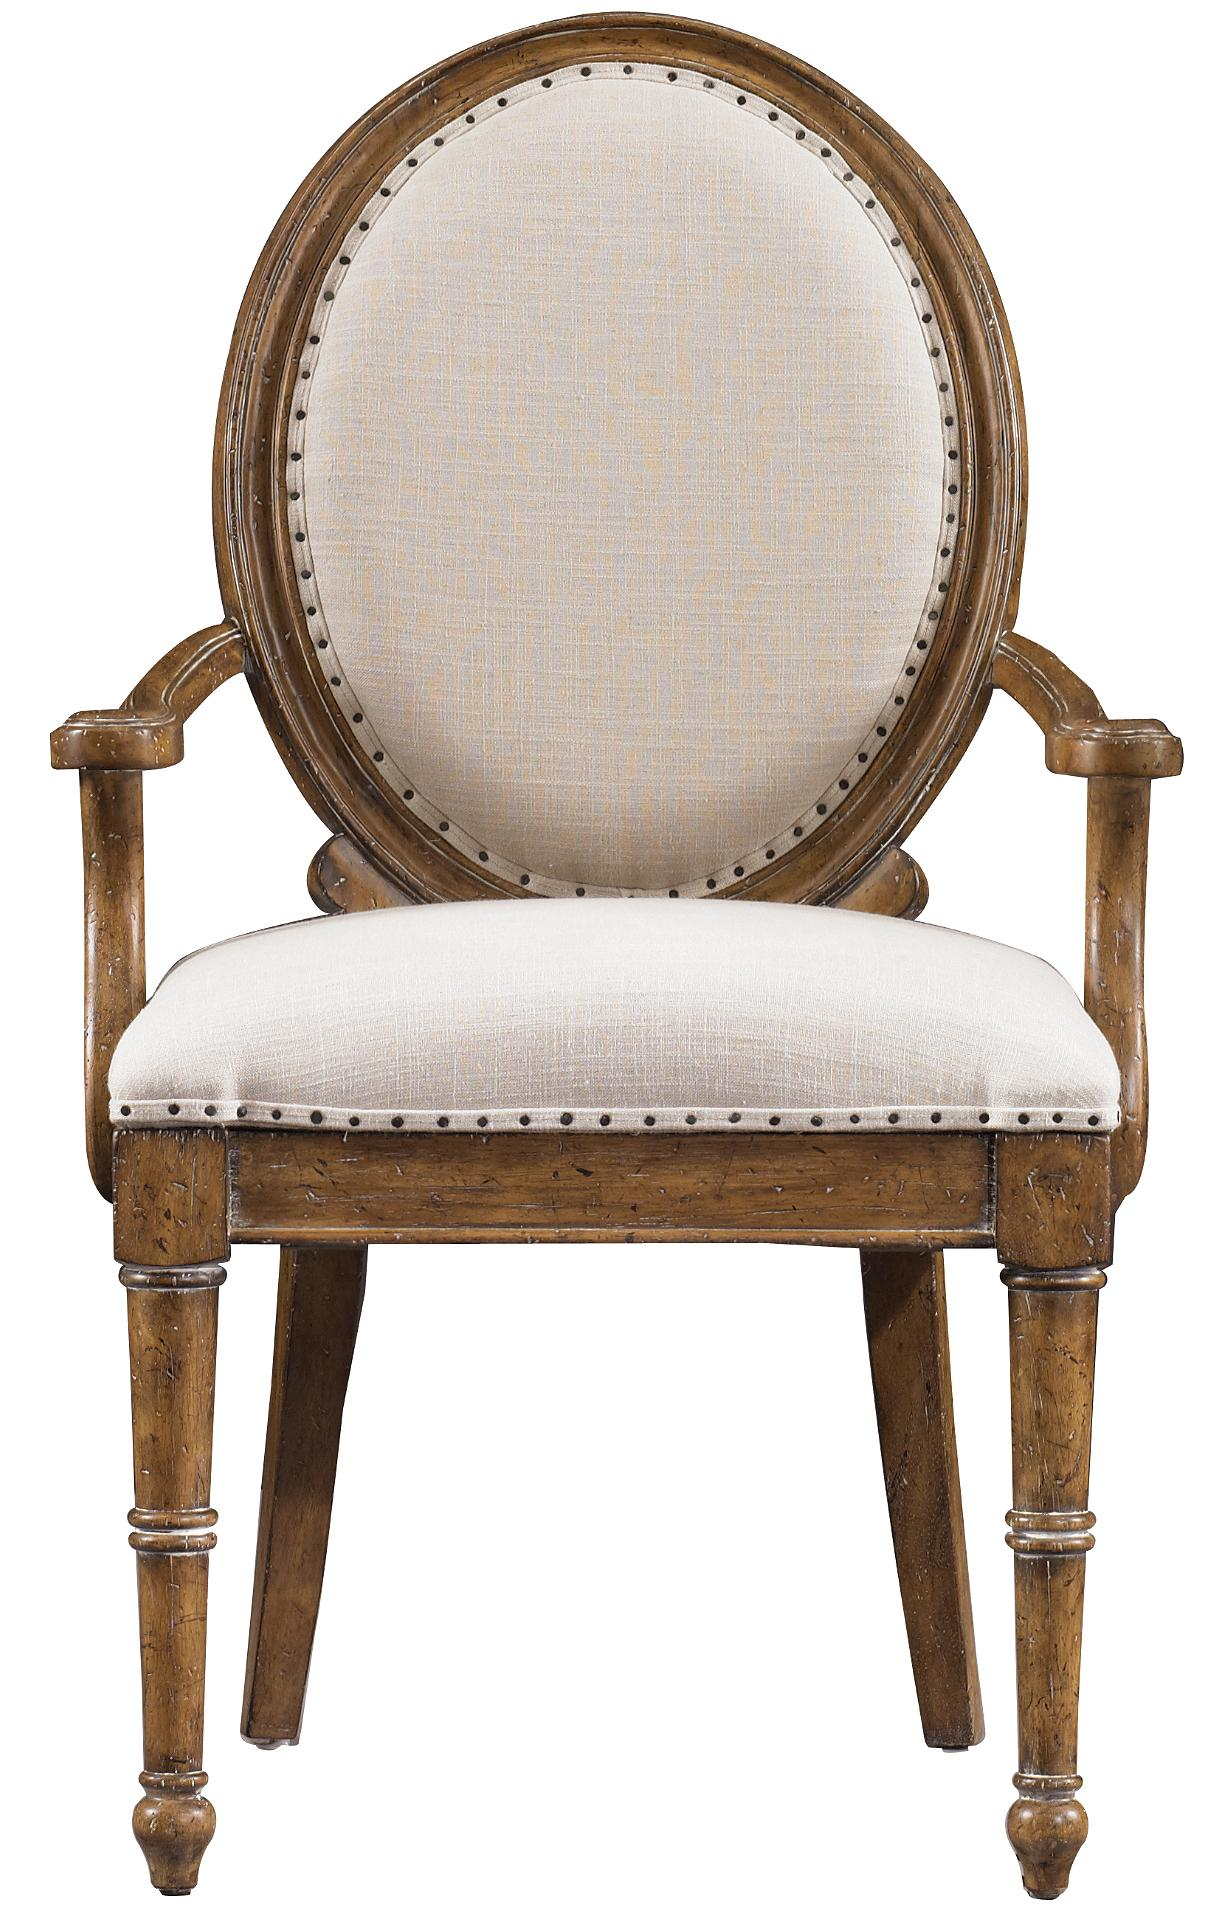 Stanley Furniture European Farmhouse Million Stars Hostess Chair - Item Number: 018-61-71